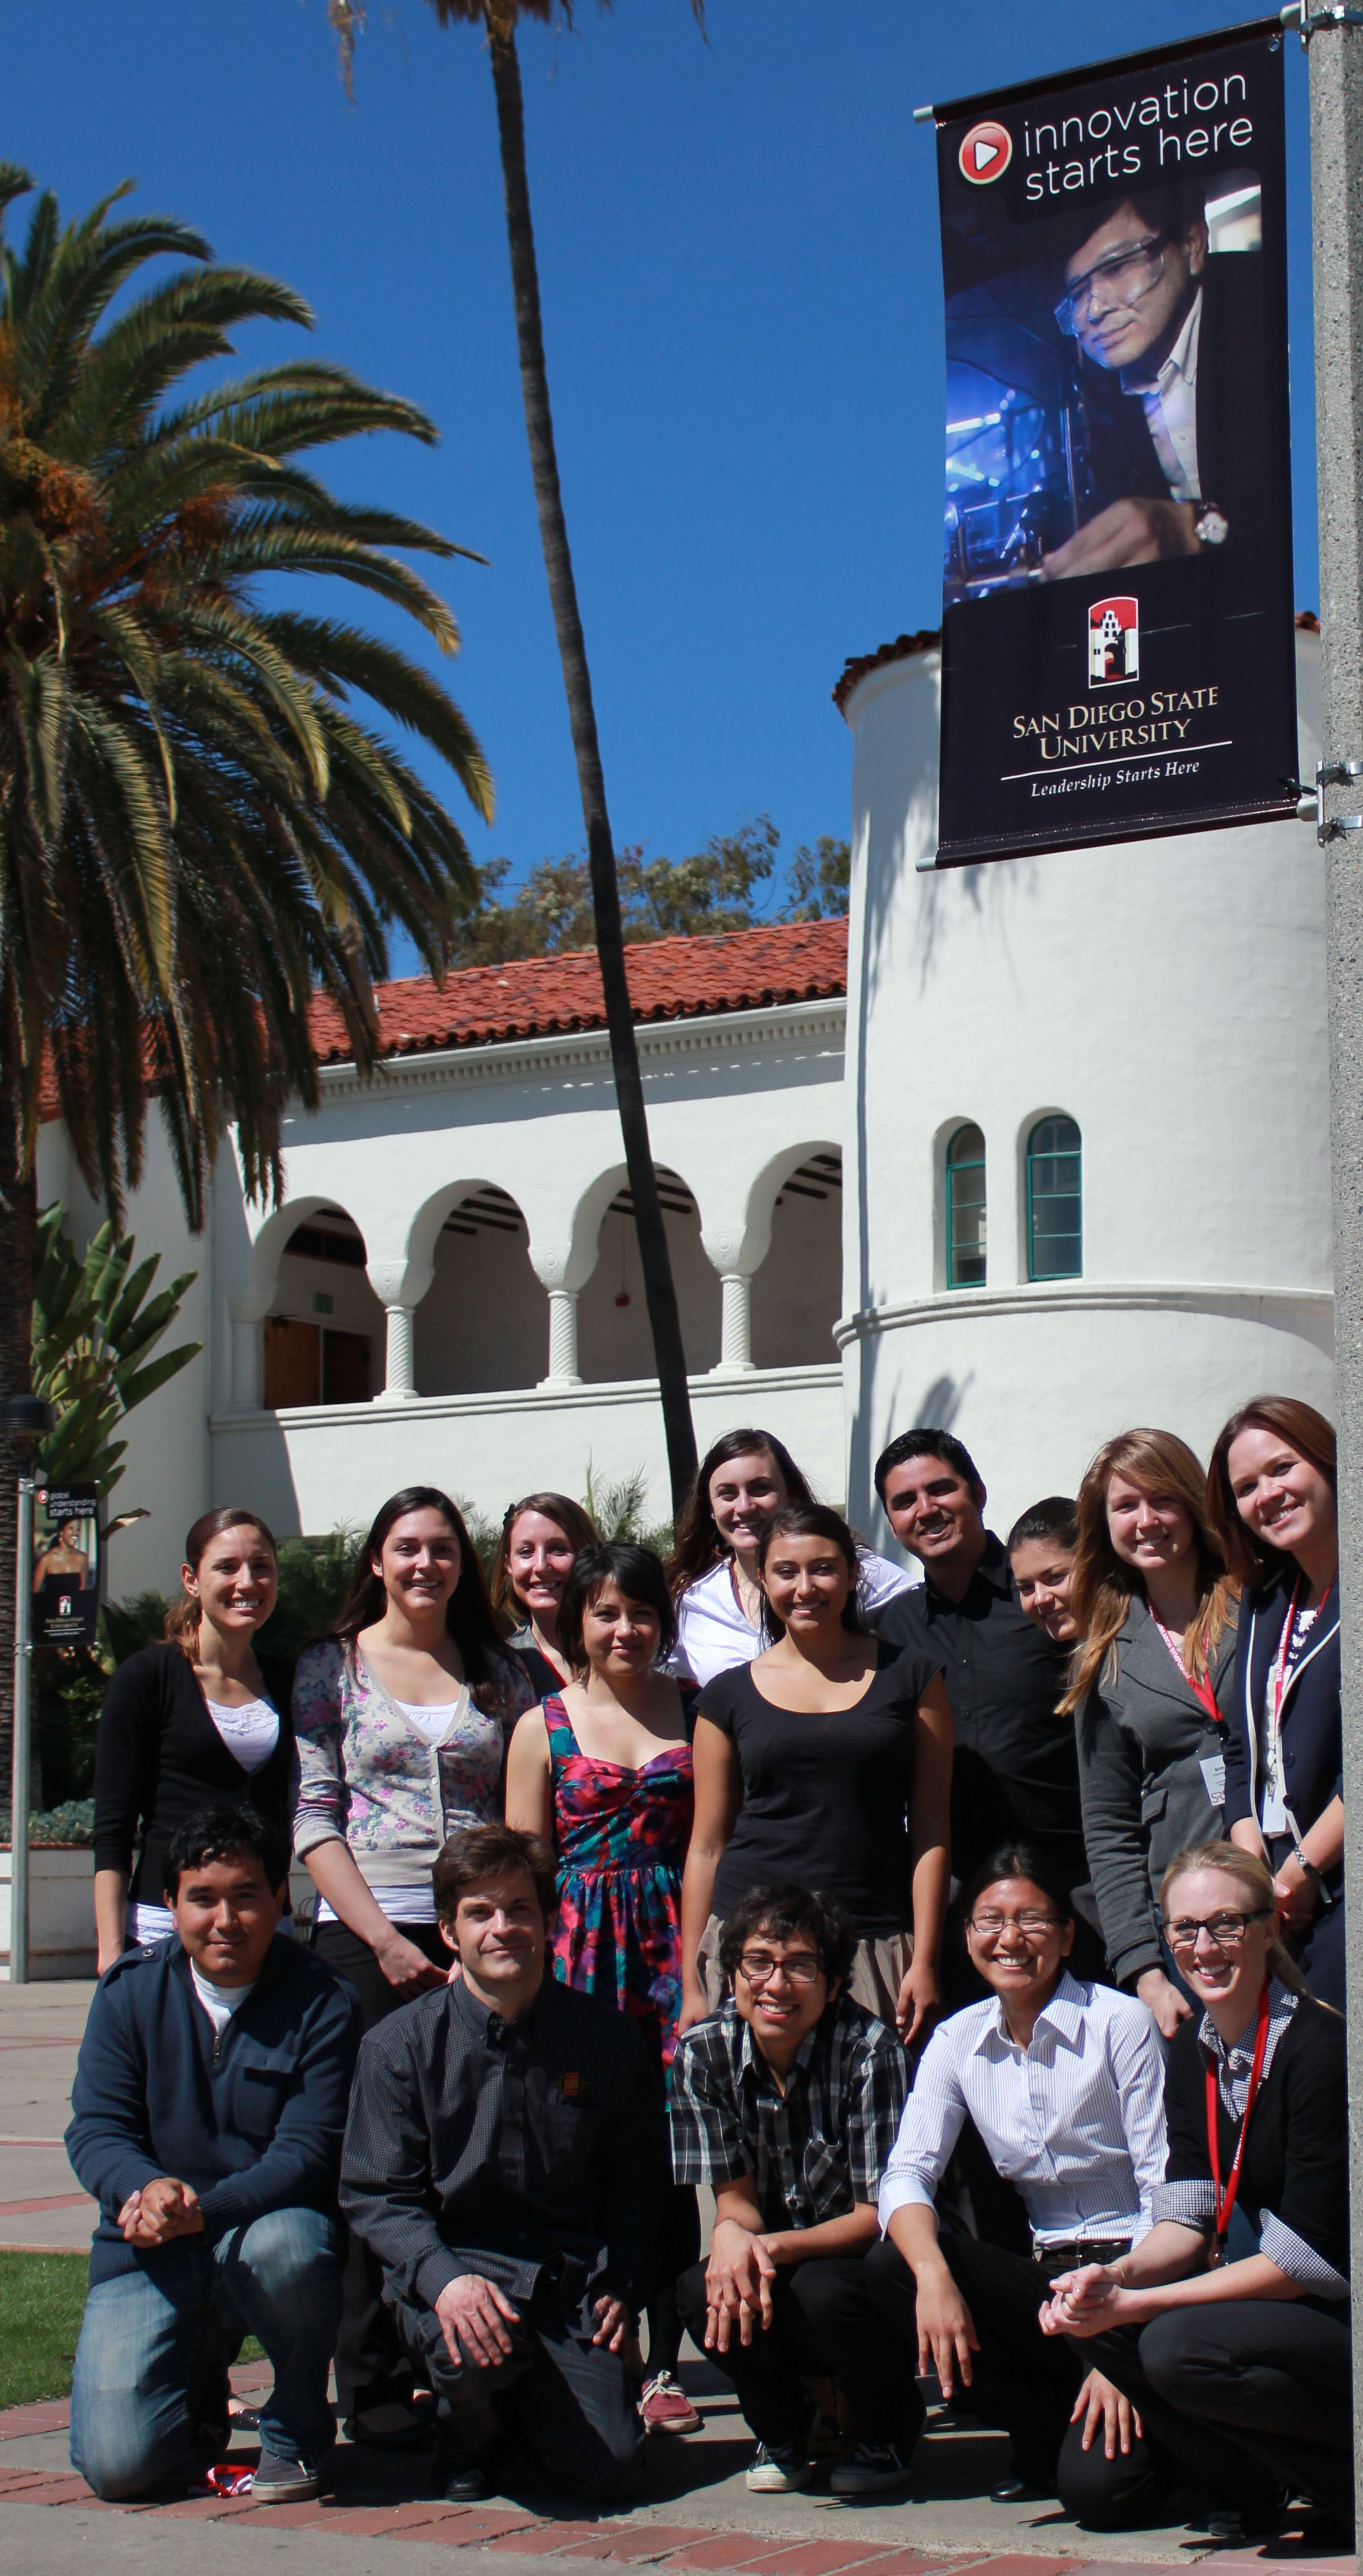 mbrs innovation group in front of hepner hall, Dr. Bill Tong poster overhead